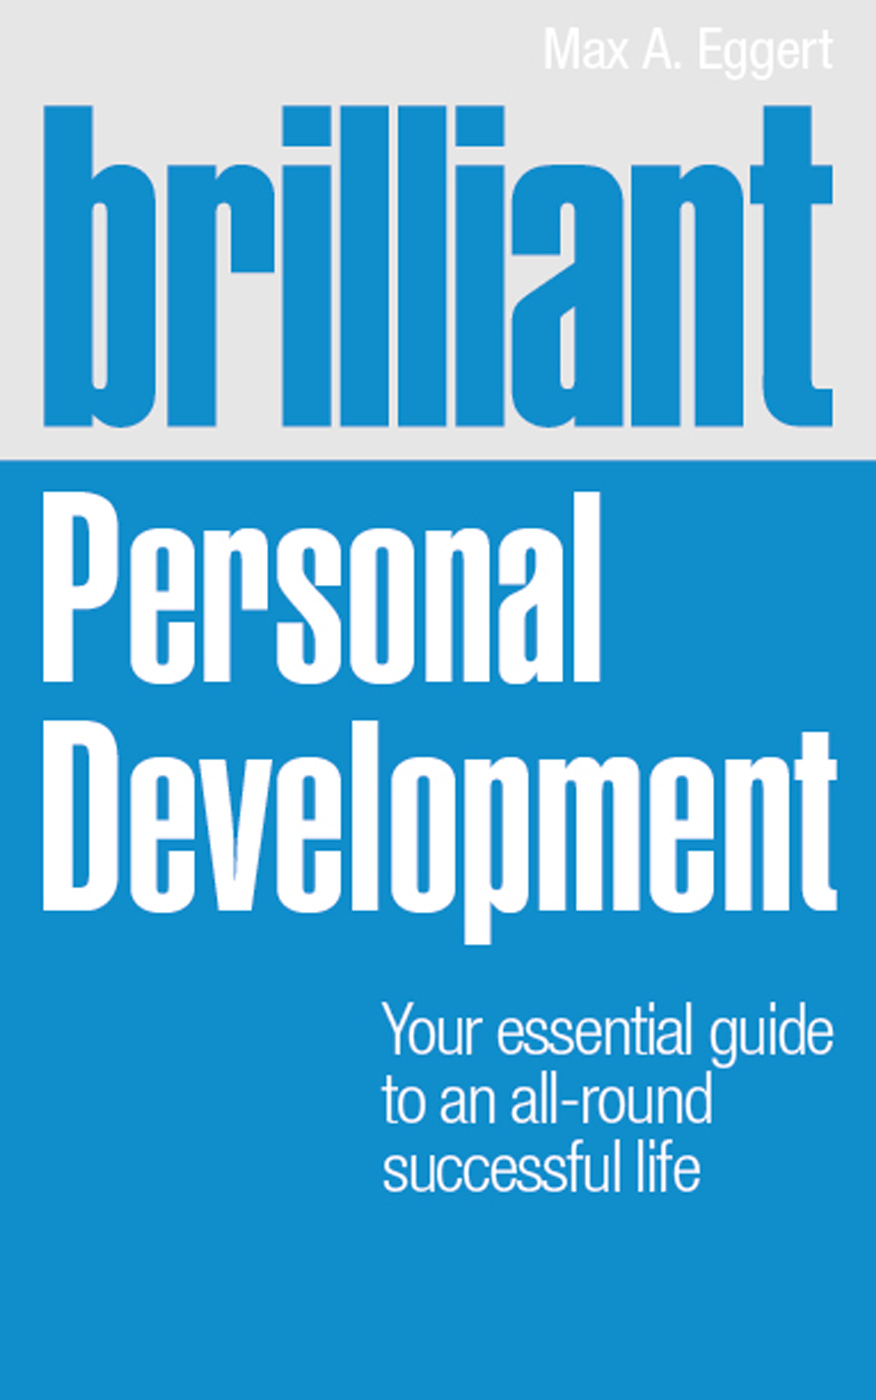 Brilliant Personal Development Your essential guide to an all-round successful life